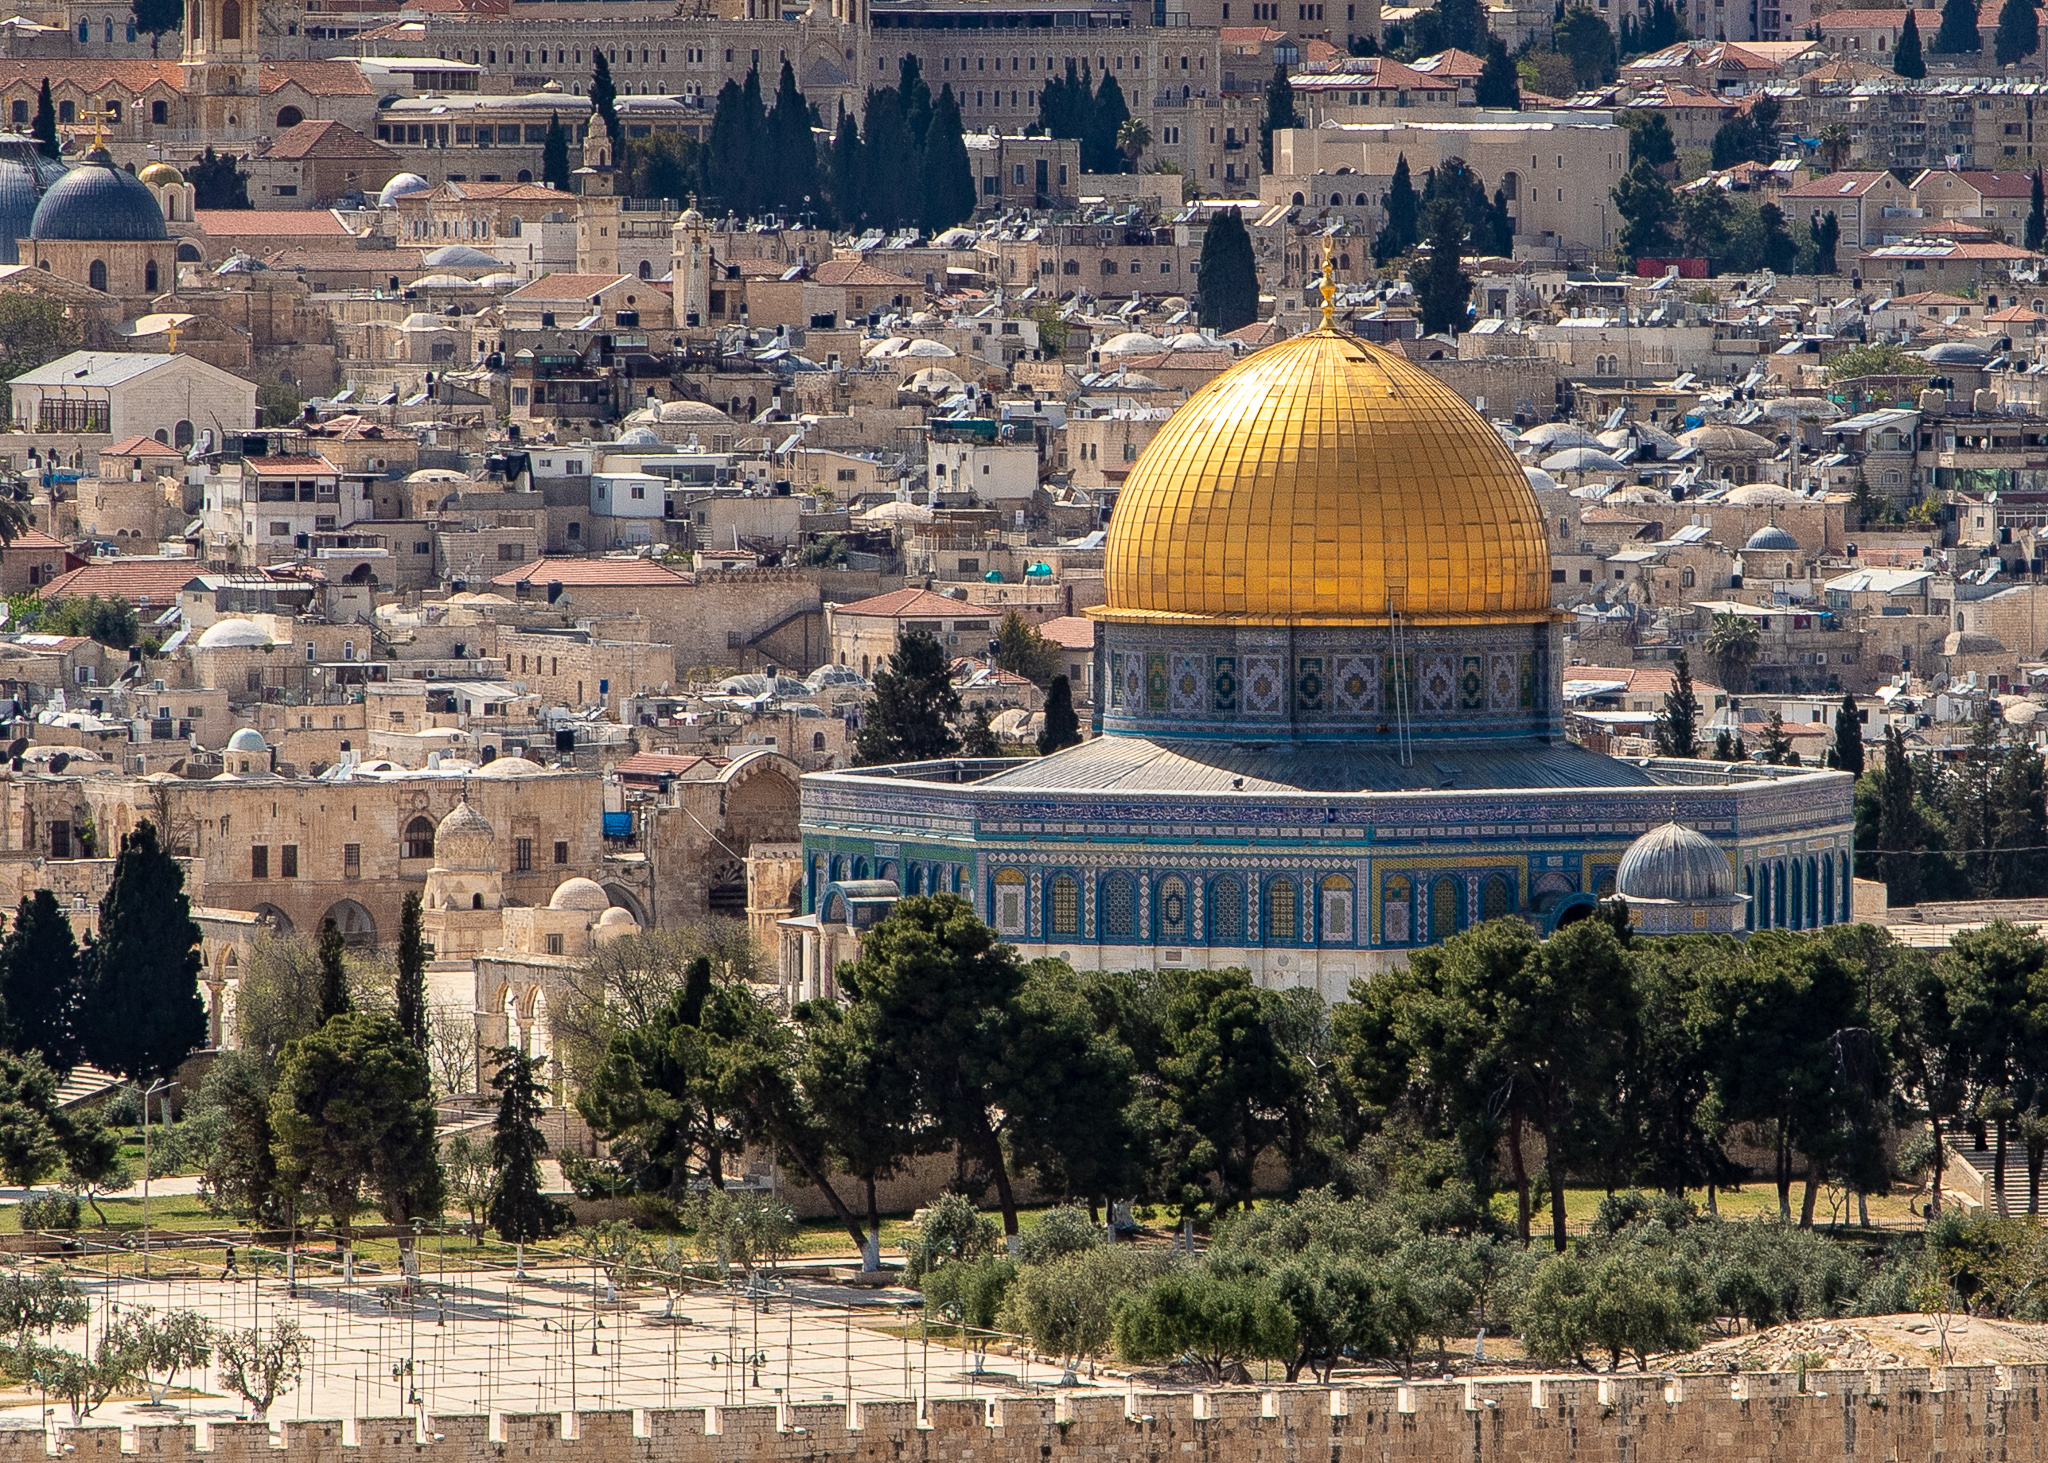 A closer look at Jerusalem's most recognisable landmark